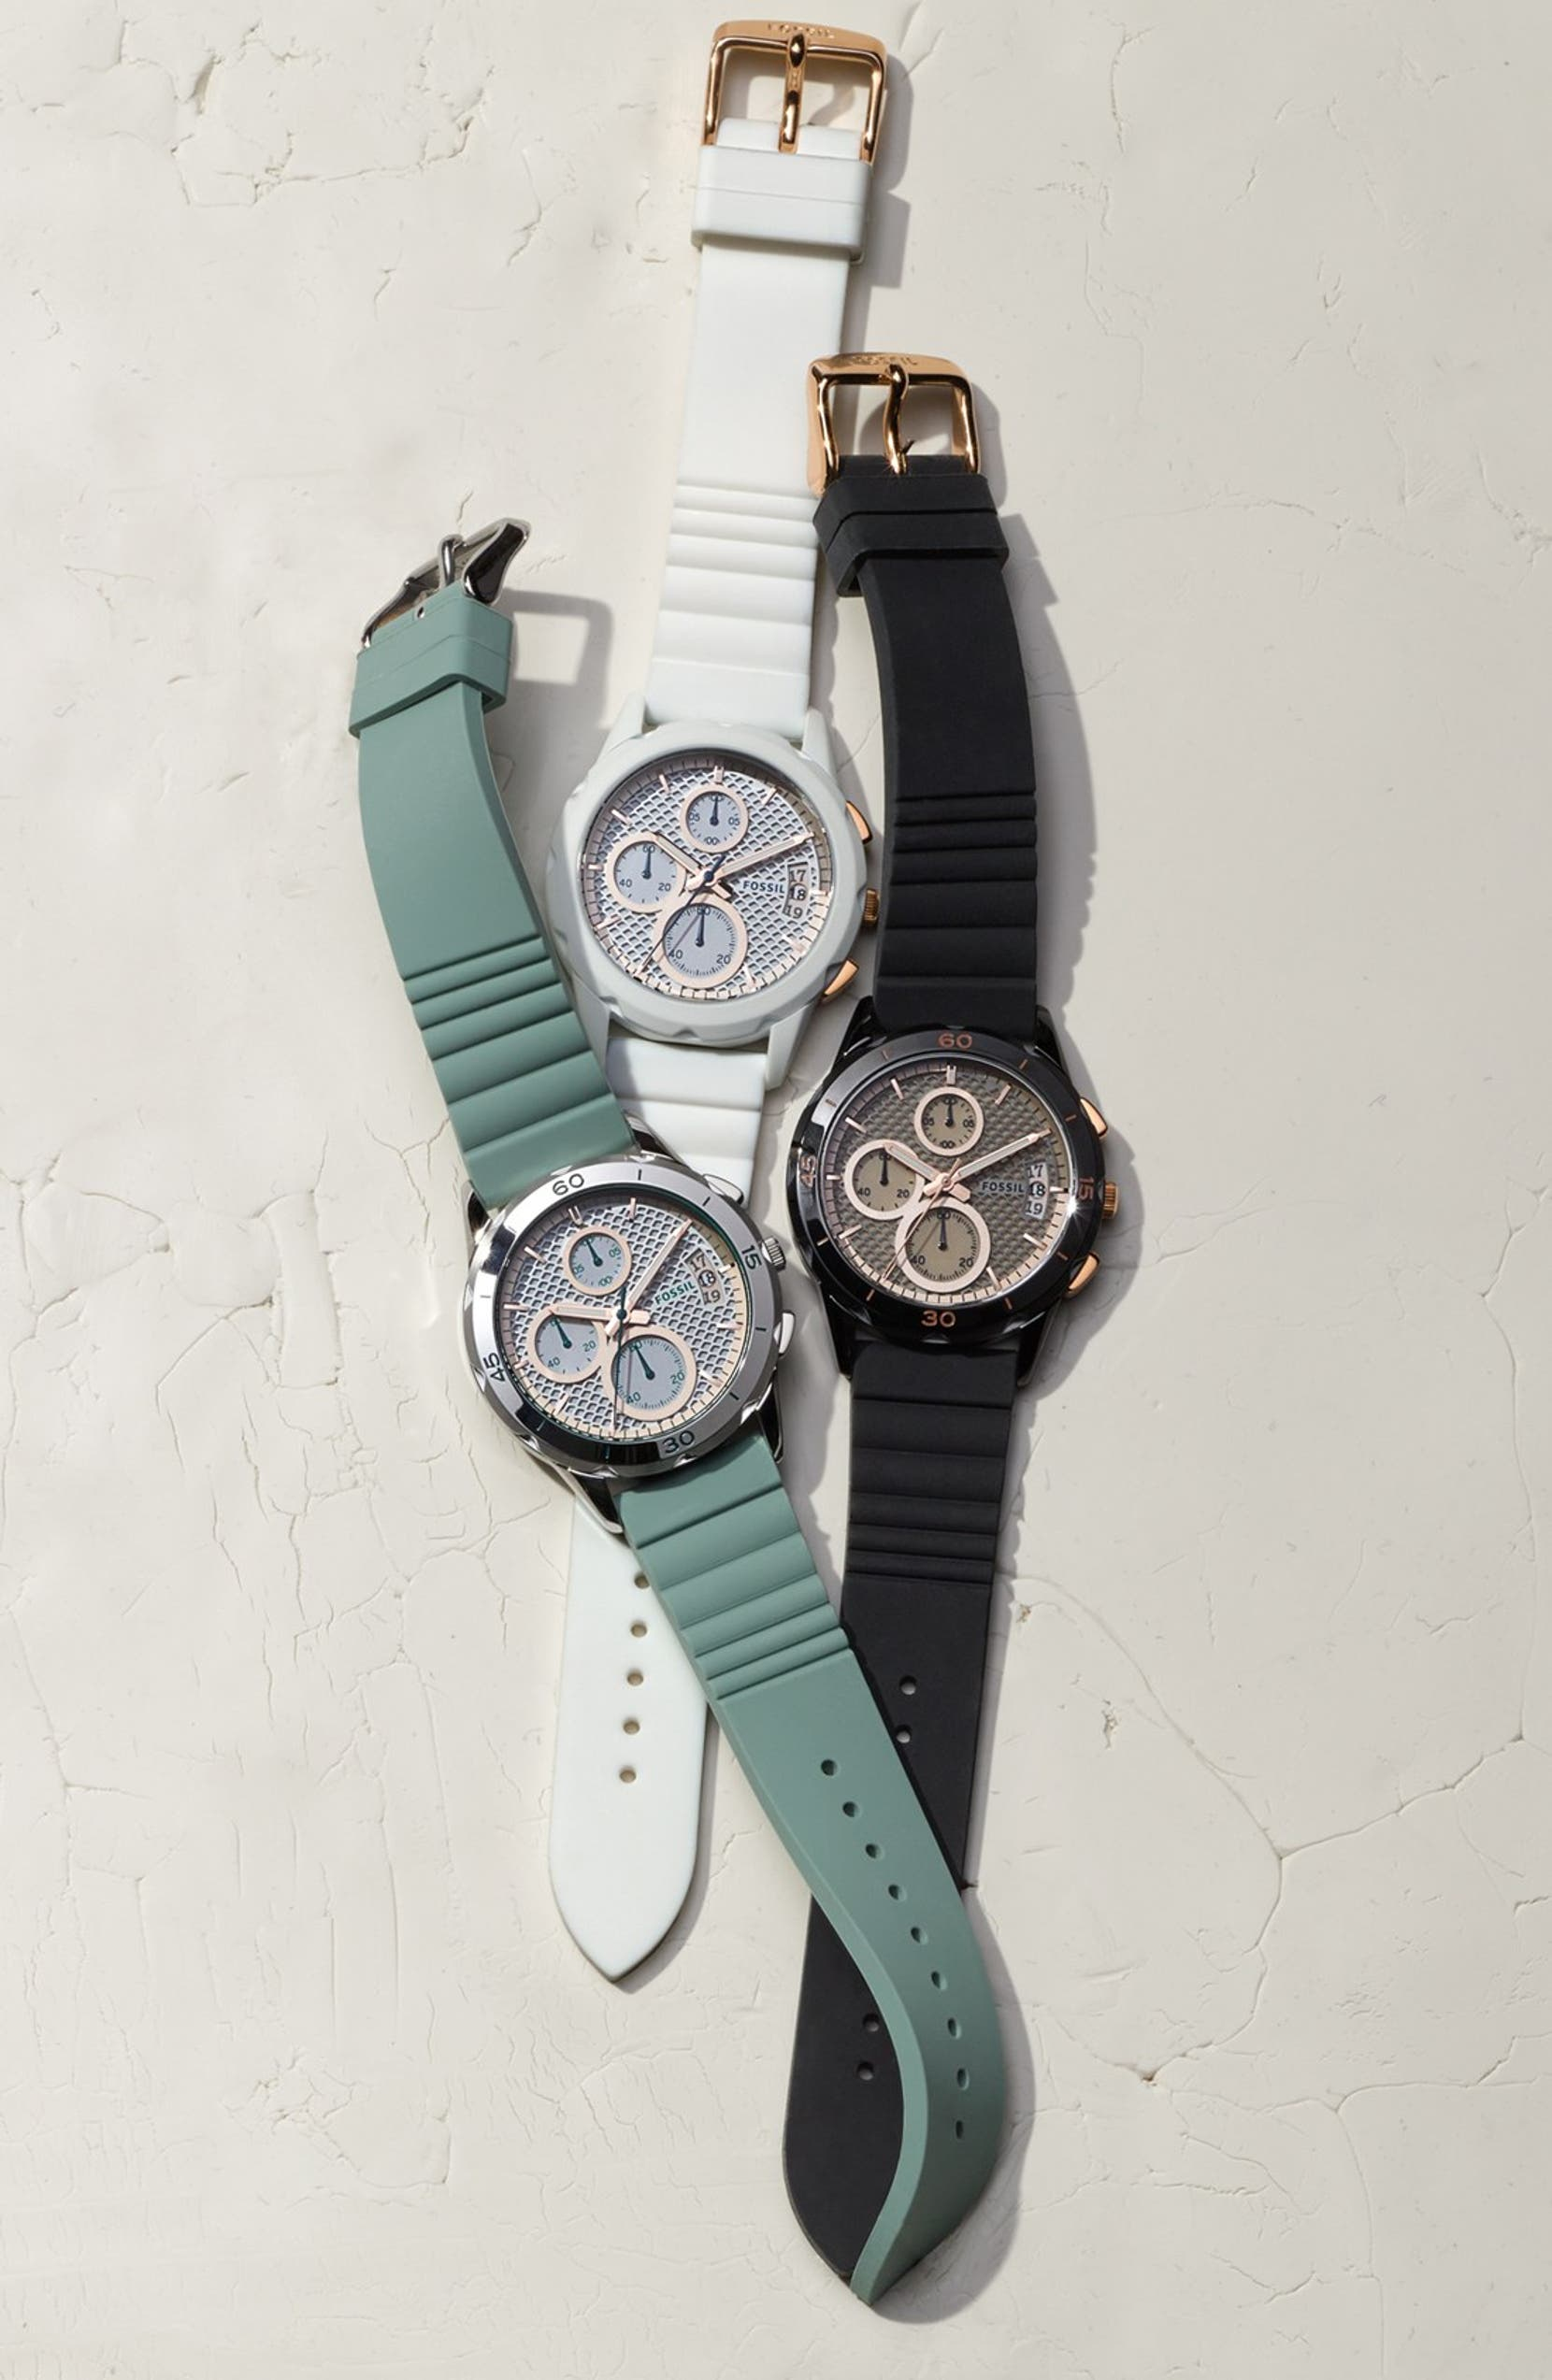 Fossil Modern Pursuit Chronograph Silicone Strap Watch 39mm Nordstrom